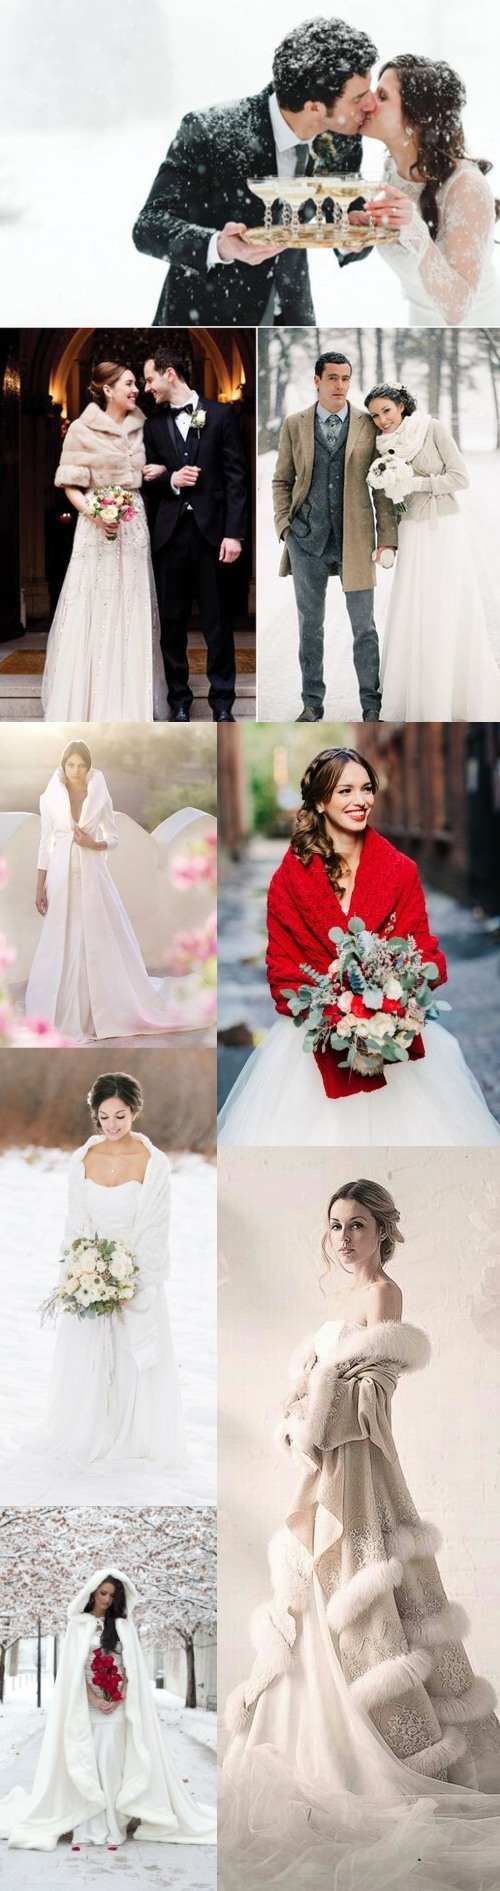 8 Stylish Winter wedding dress ideas